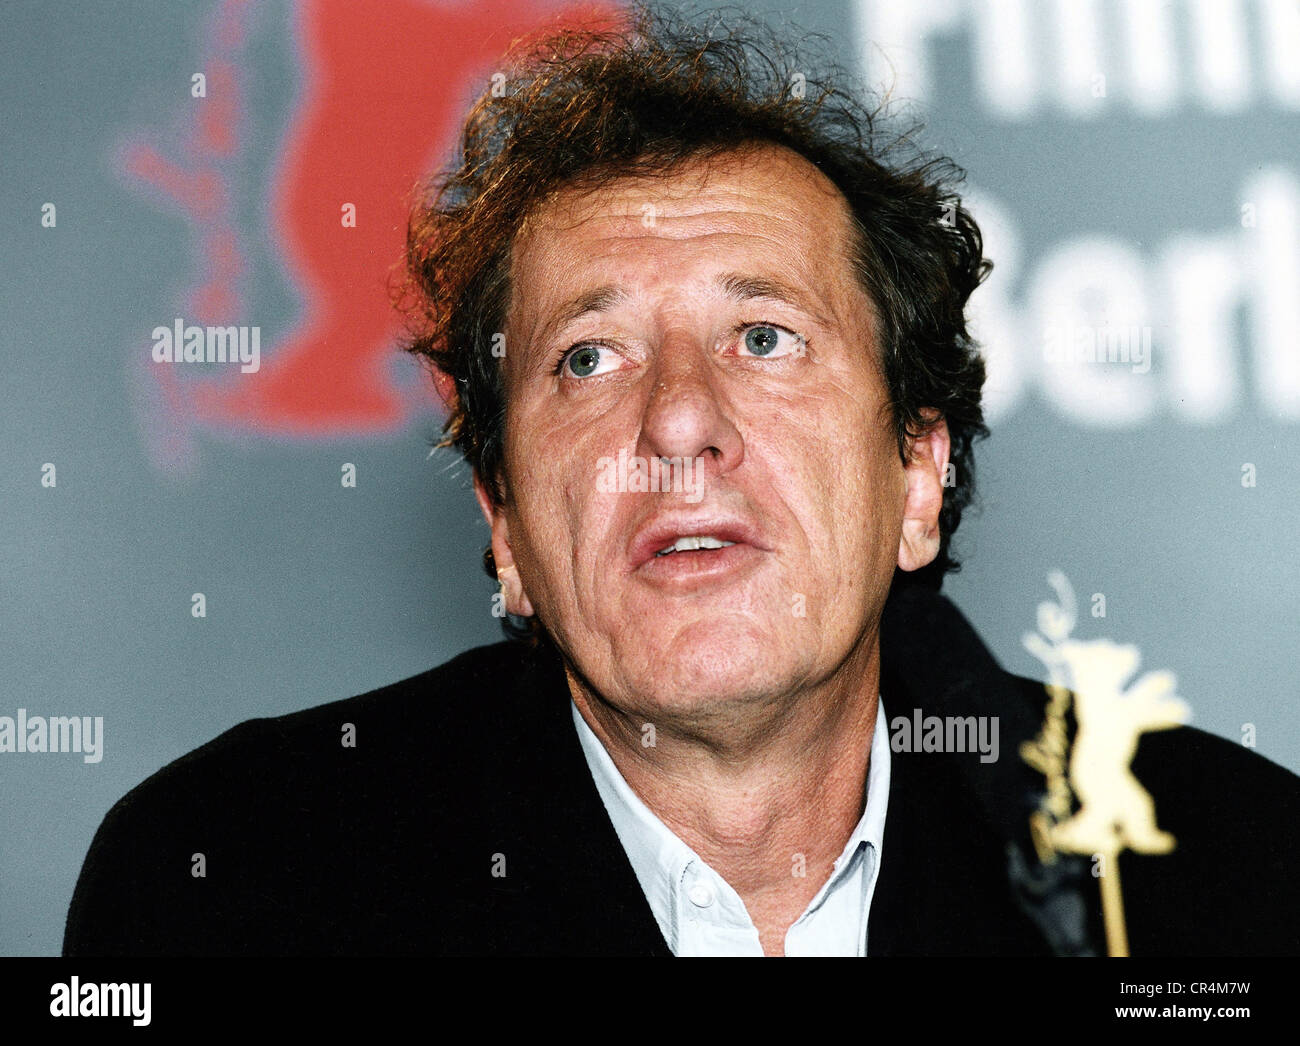 Rush, Geoffrey, * 6.7.1951, Australian actor, portrait, February 2001, 51st Berlin International Film Festival (Berlinale), - Stock Image